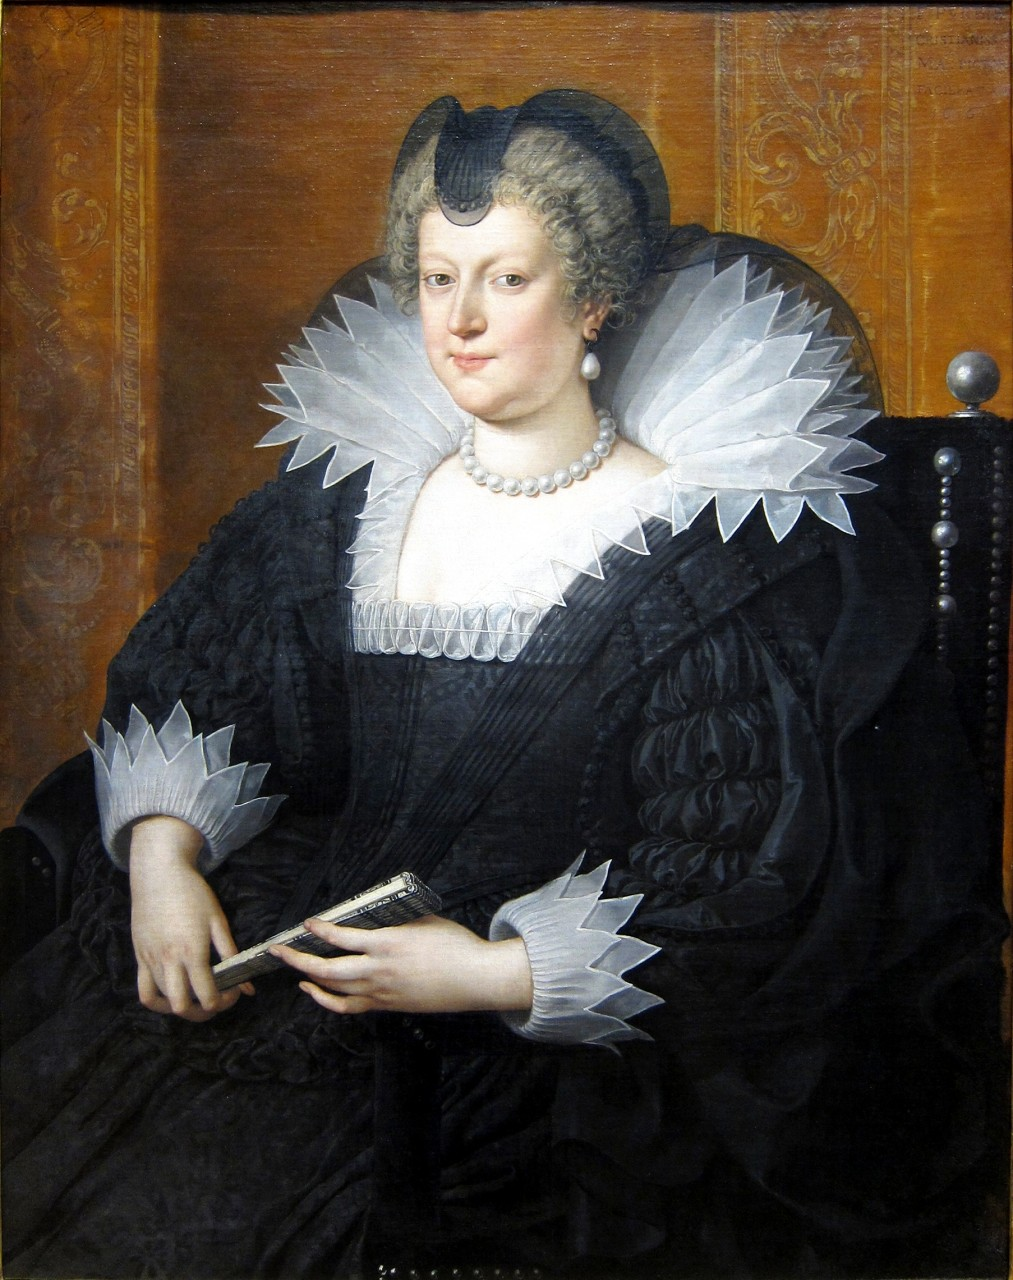 https://upload.wikimedia.org/wikipedia/commons/2/23/Chicago_art_inst_pourbus_marie_de_medici.JPG